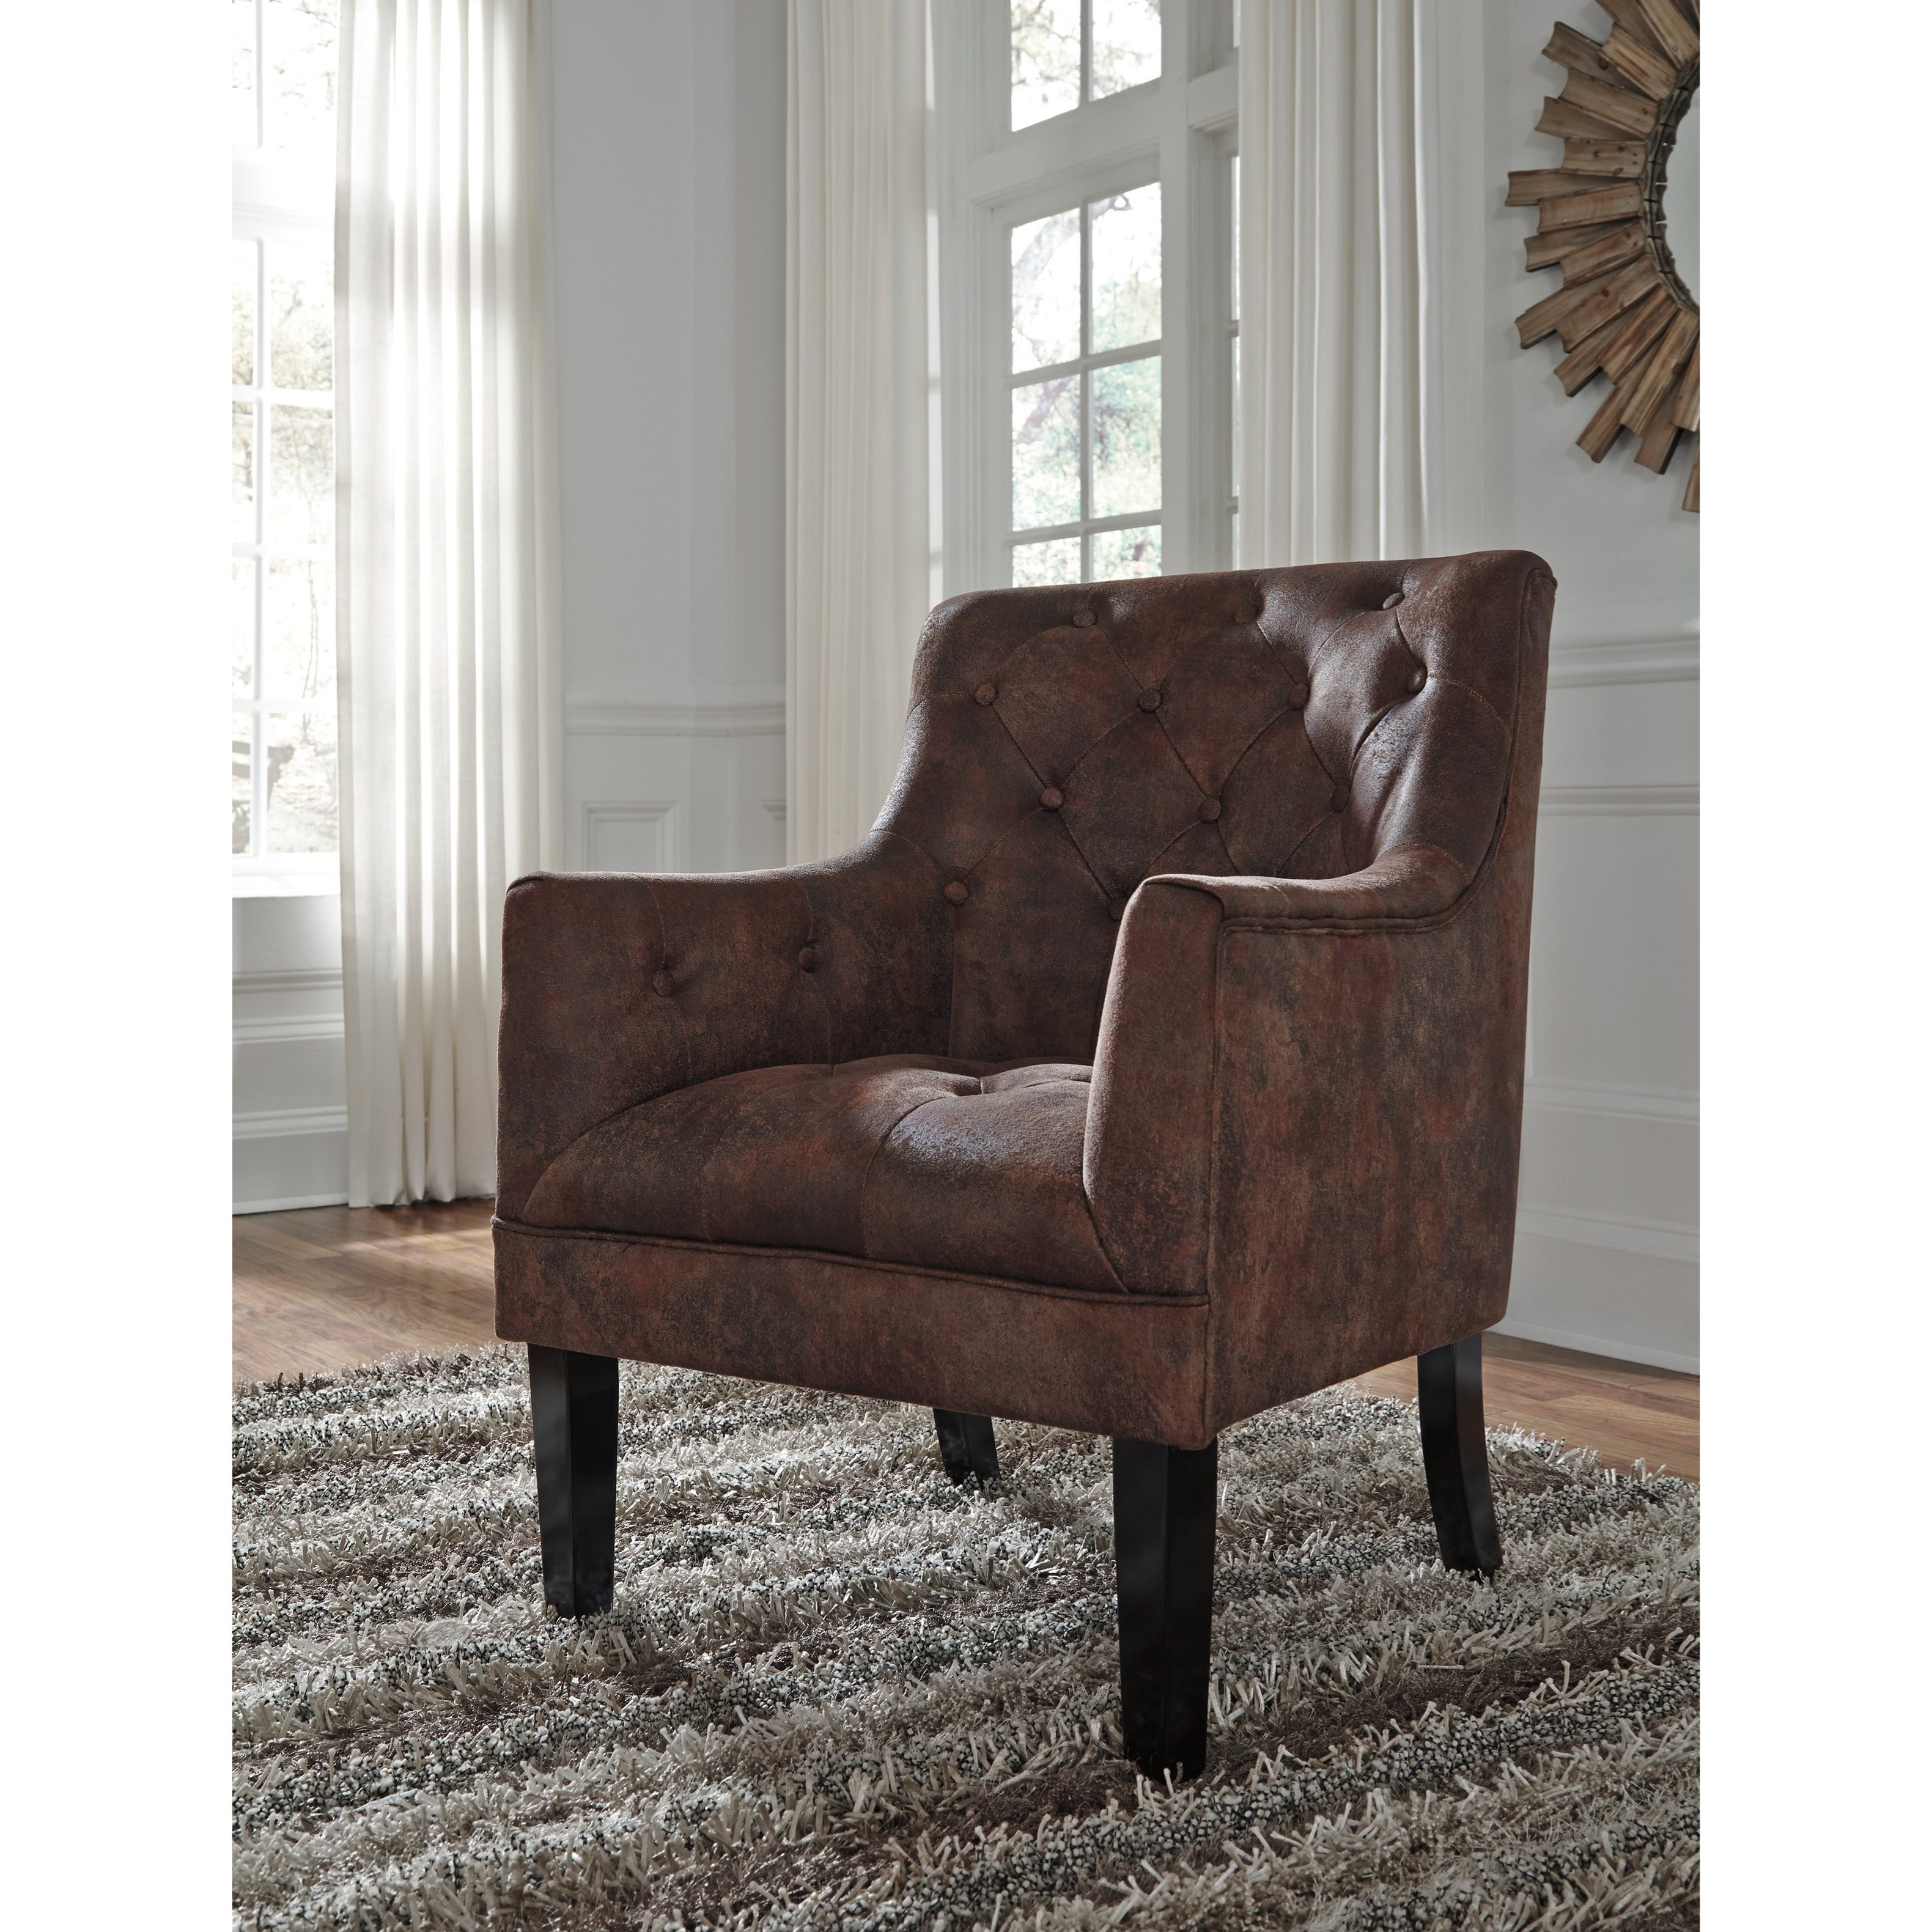 Signature Design By Ashley Drakelle Tufted Accent Chair In